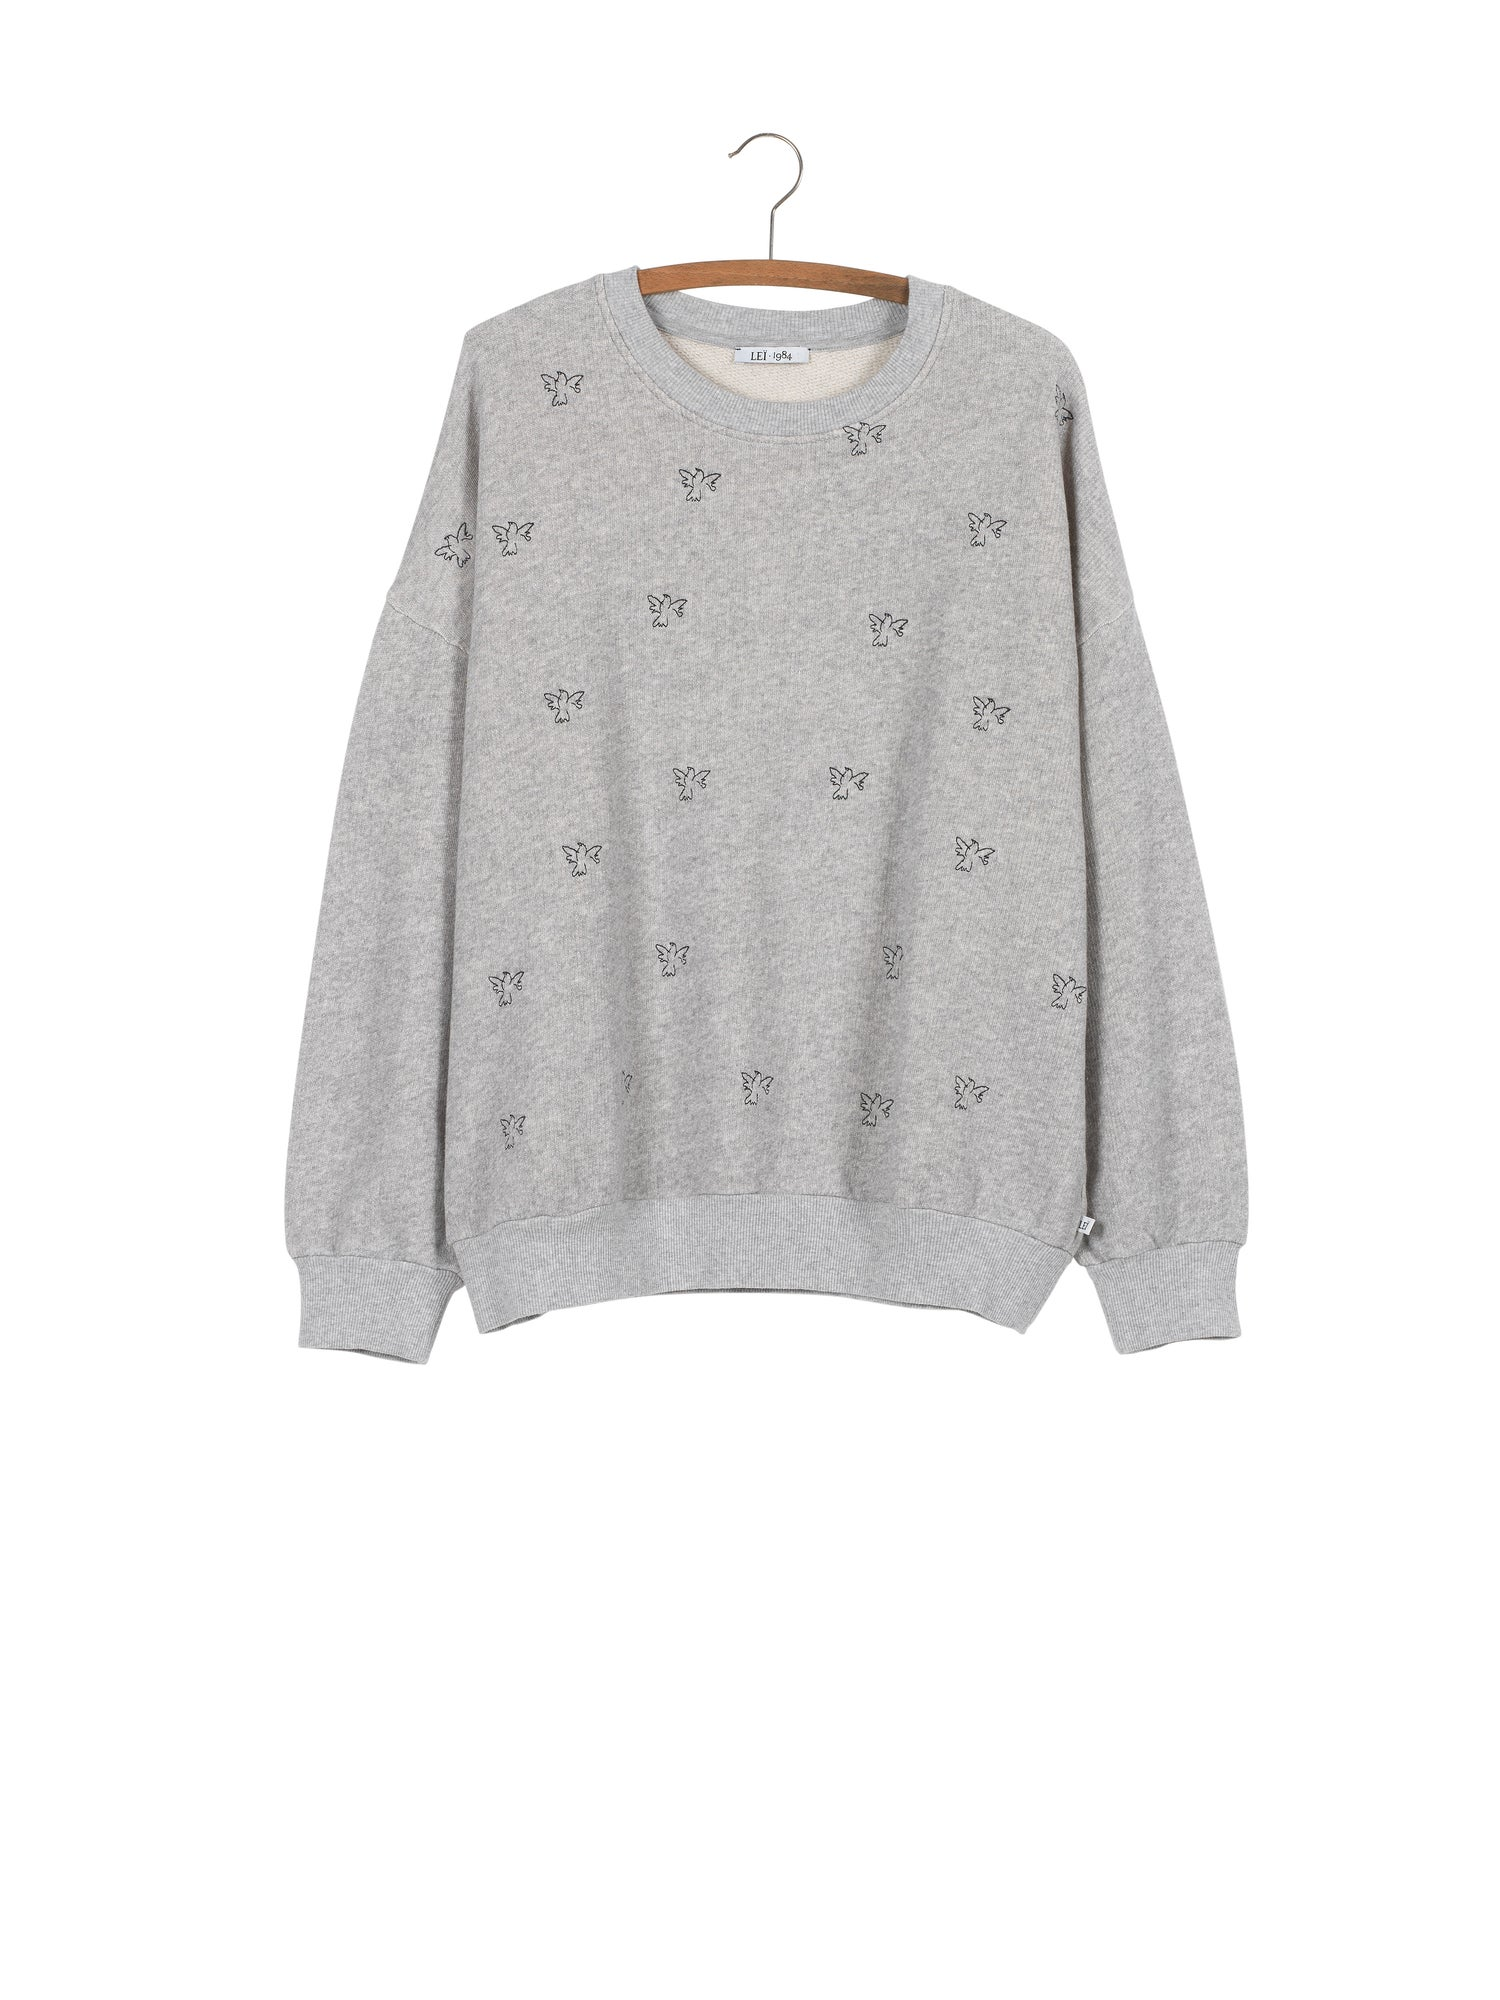 Image of Sweat AUGUSTIN colombes brodées 95€ - 50%